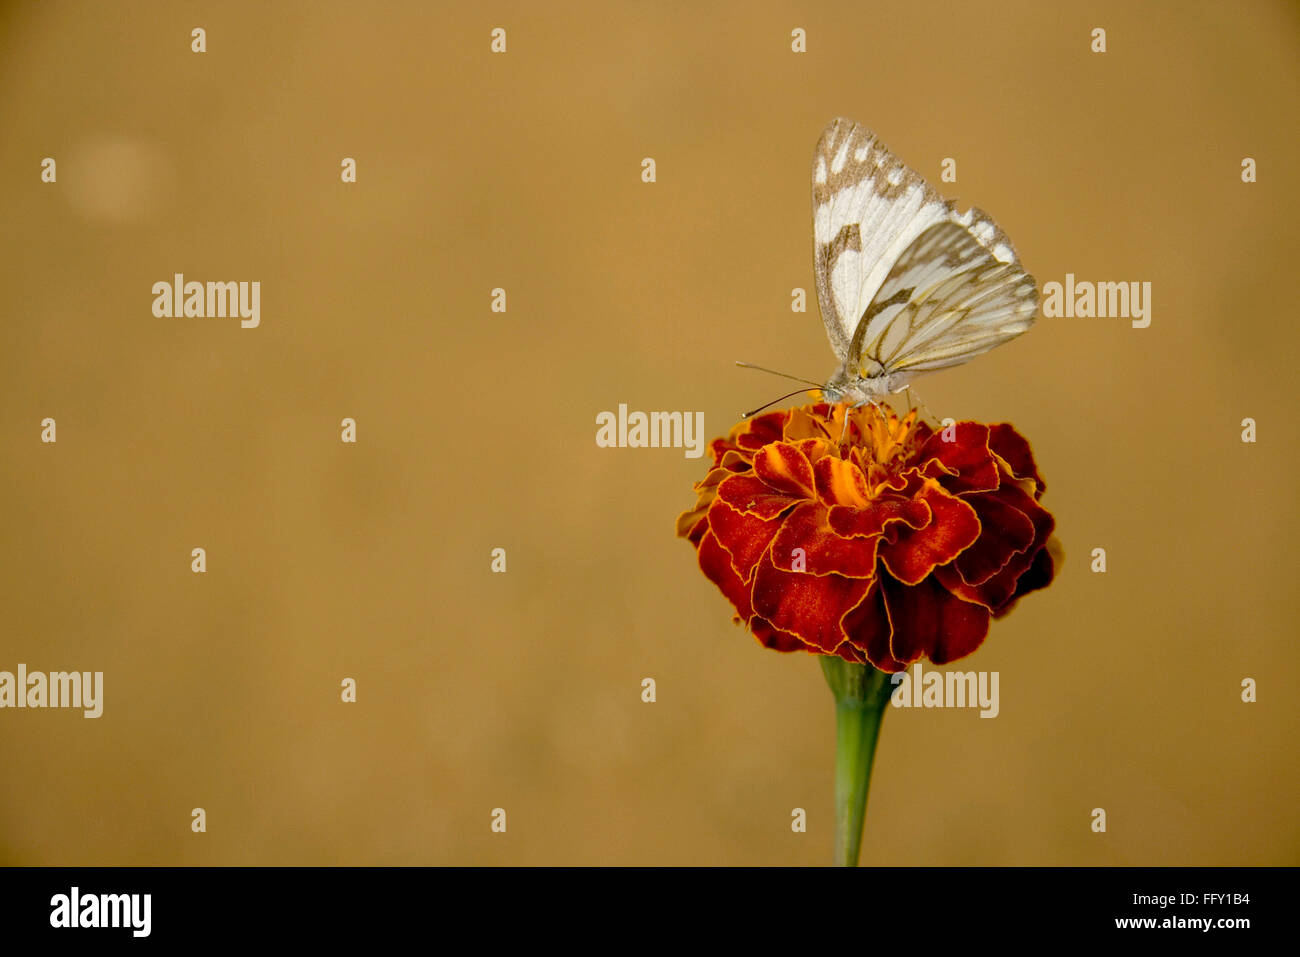 Insect , Butterfly sucking nectar from flower - Stock Image